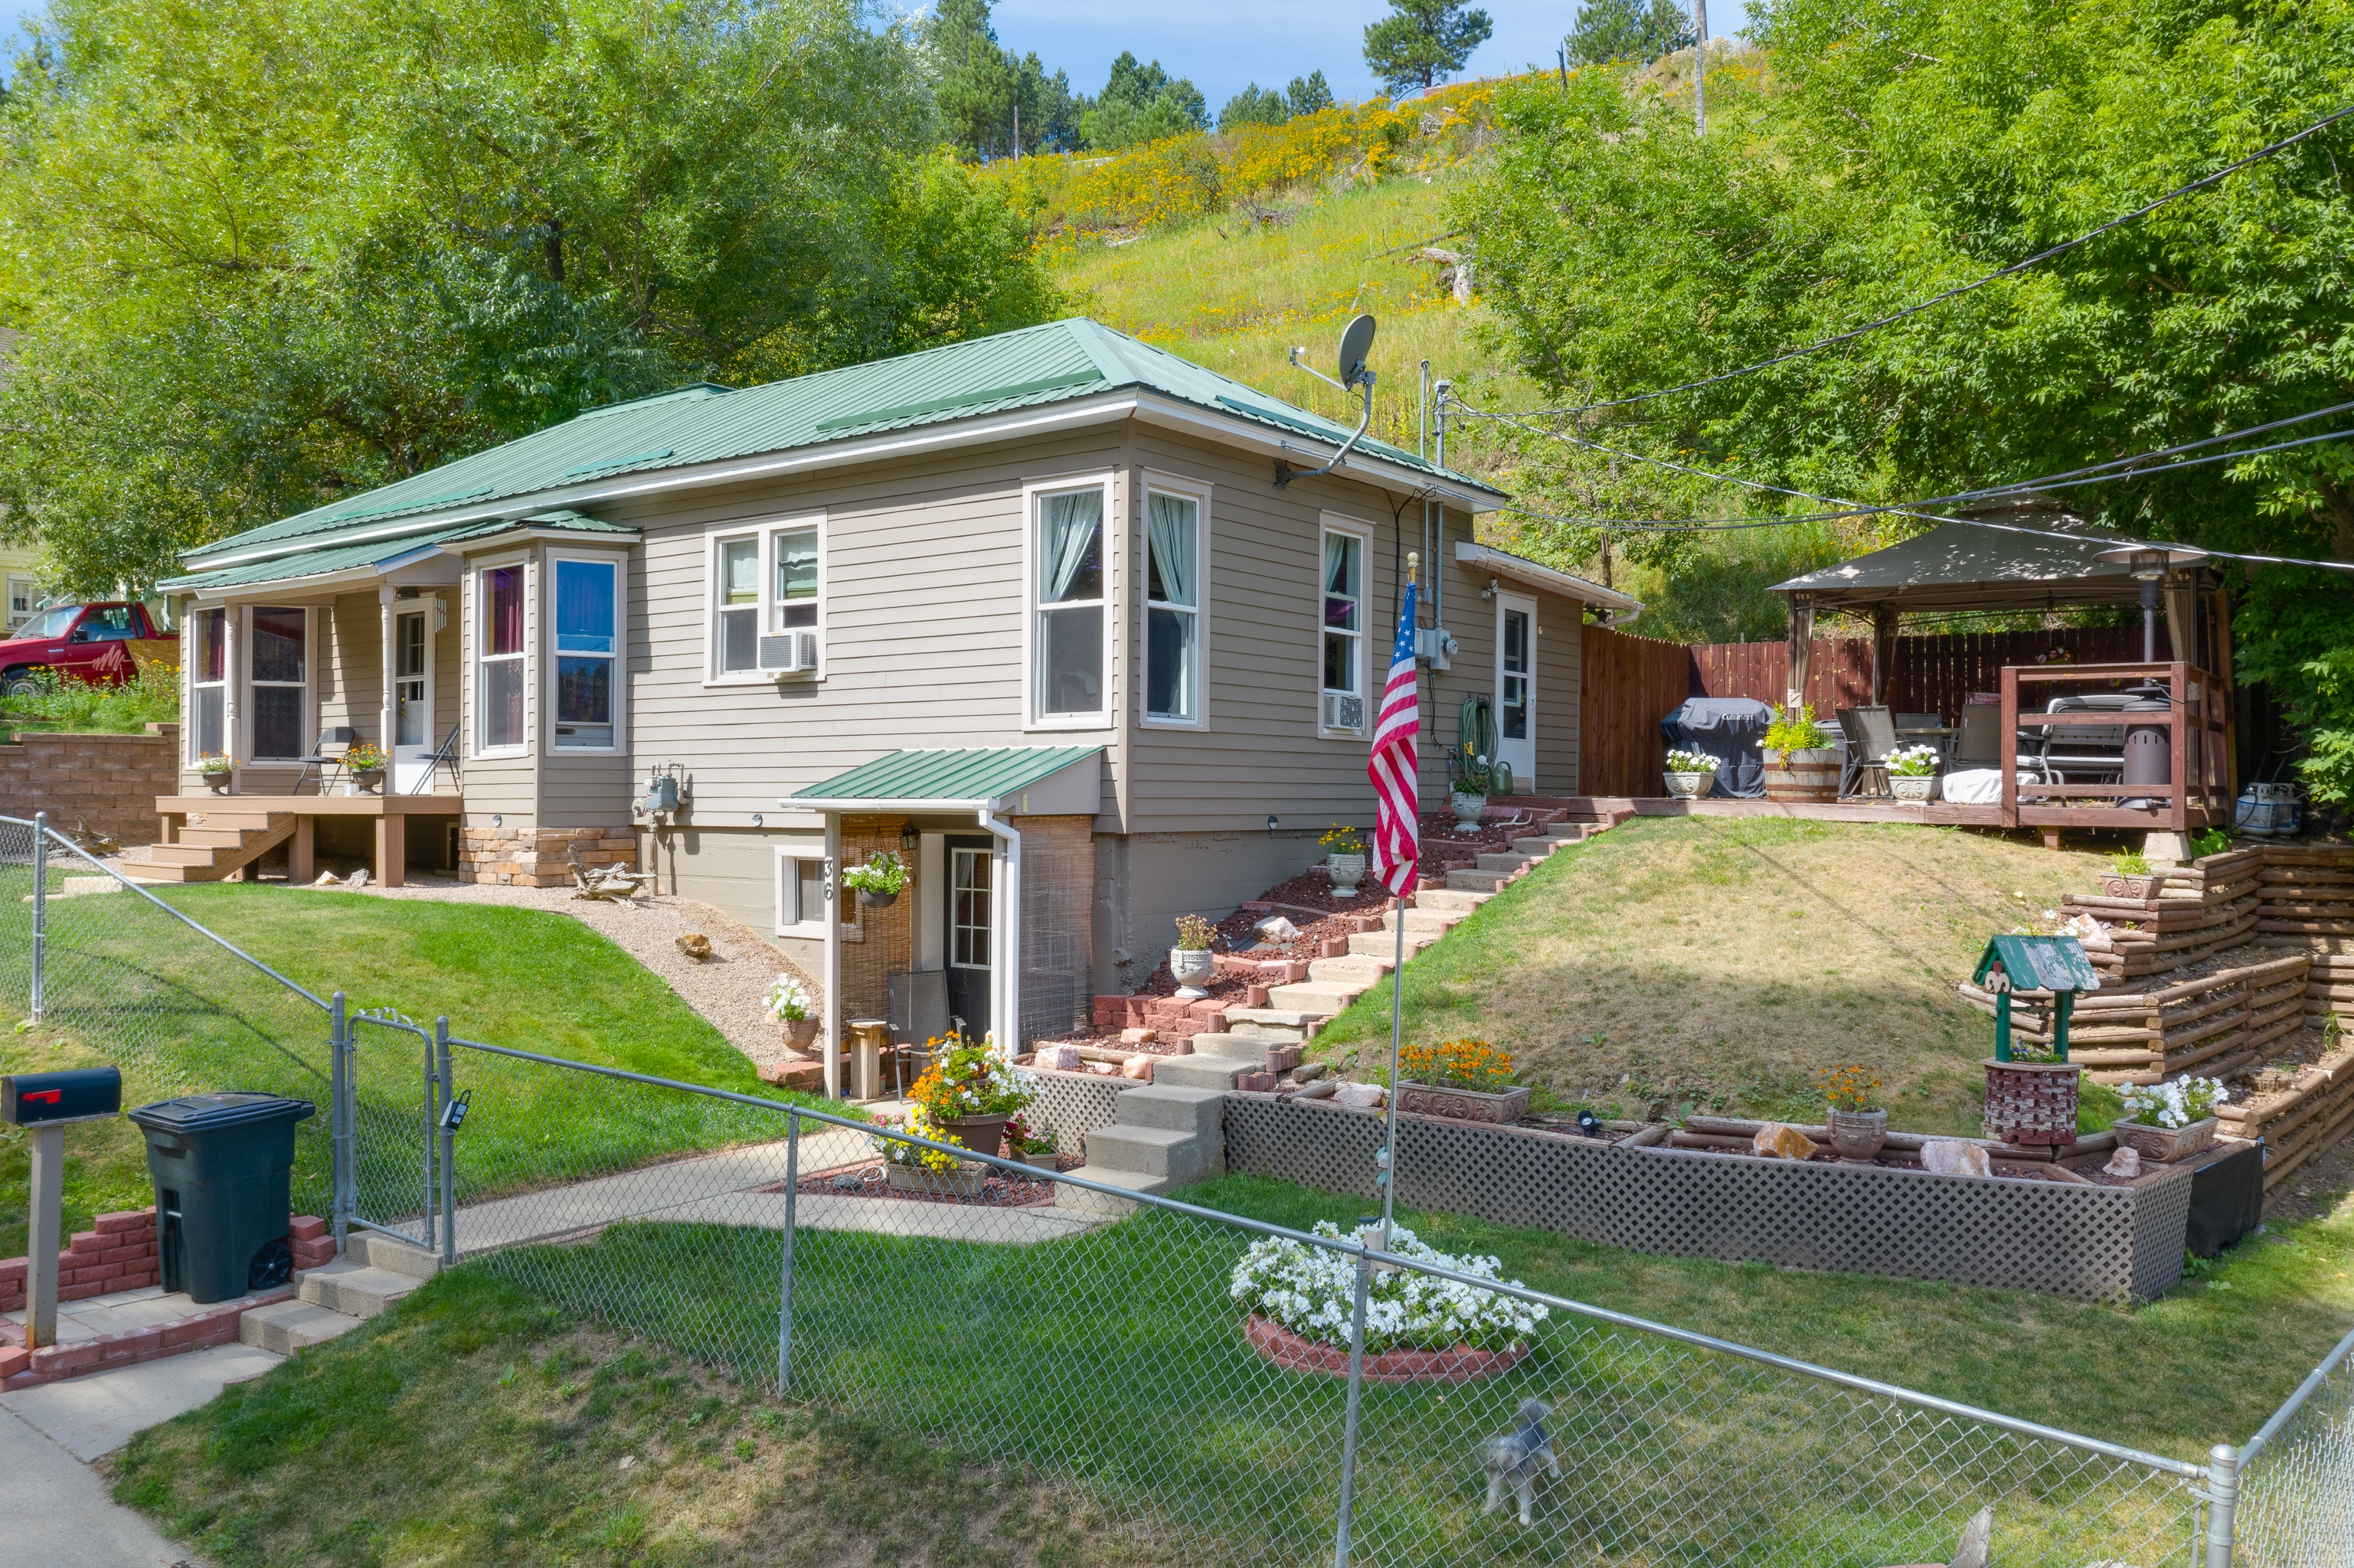 4 Bedroom home in Deadwood with 3 Car Garage